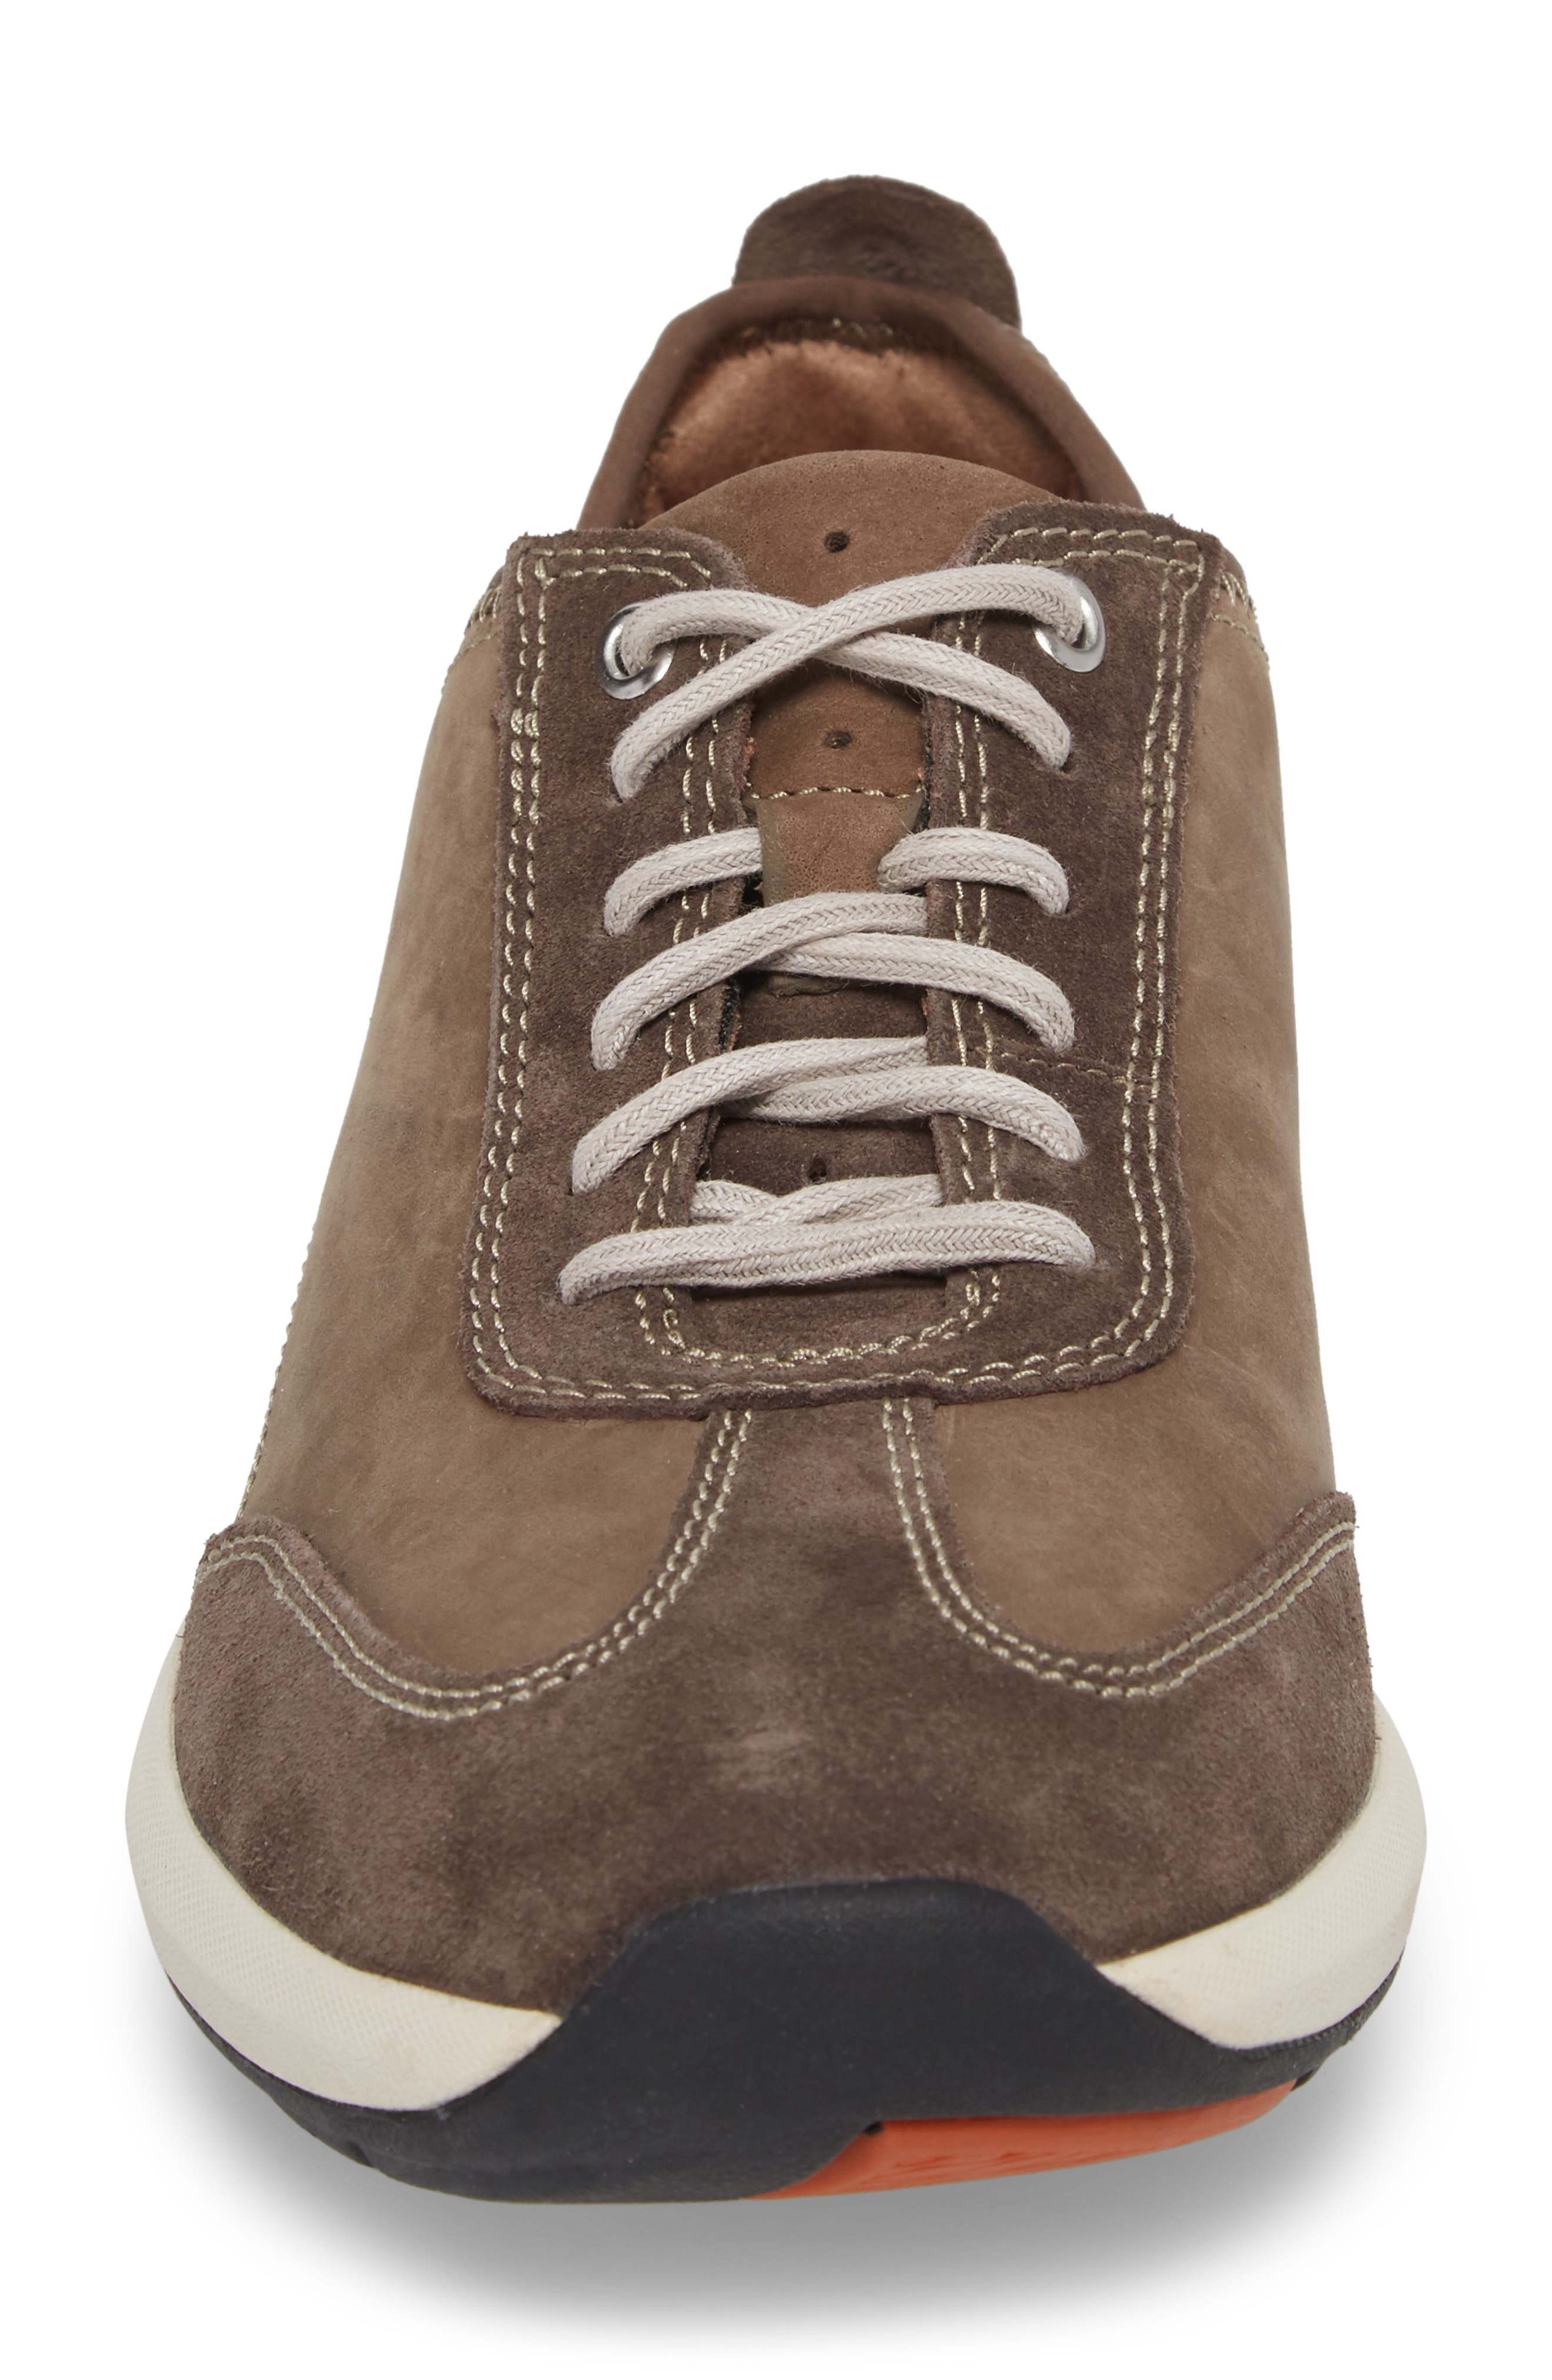 Clarks<sup>®</sup> Un Coast Low Top Sneaker,                             Alternate thumbnail 4, color,                             279